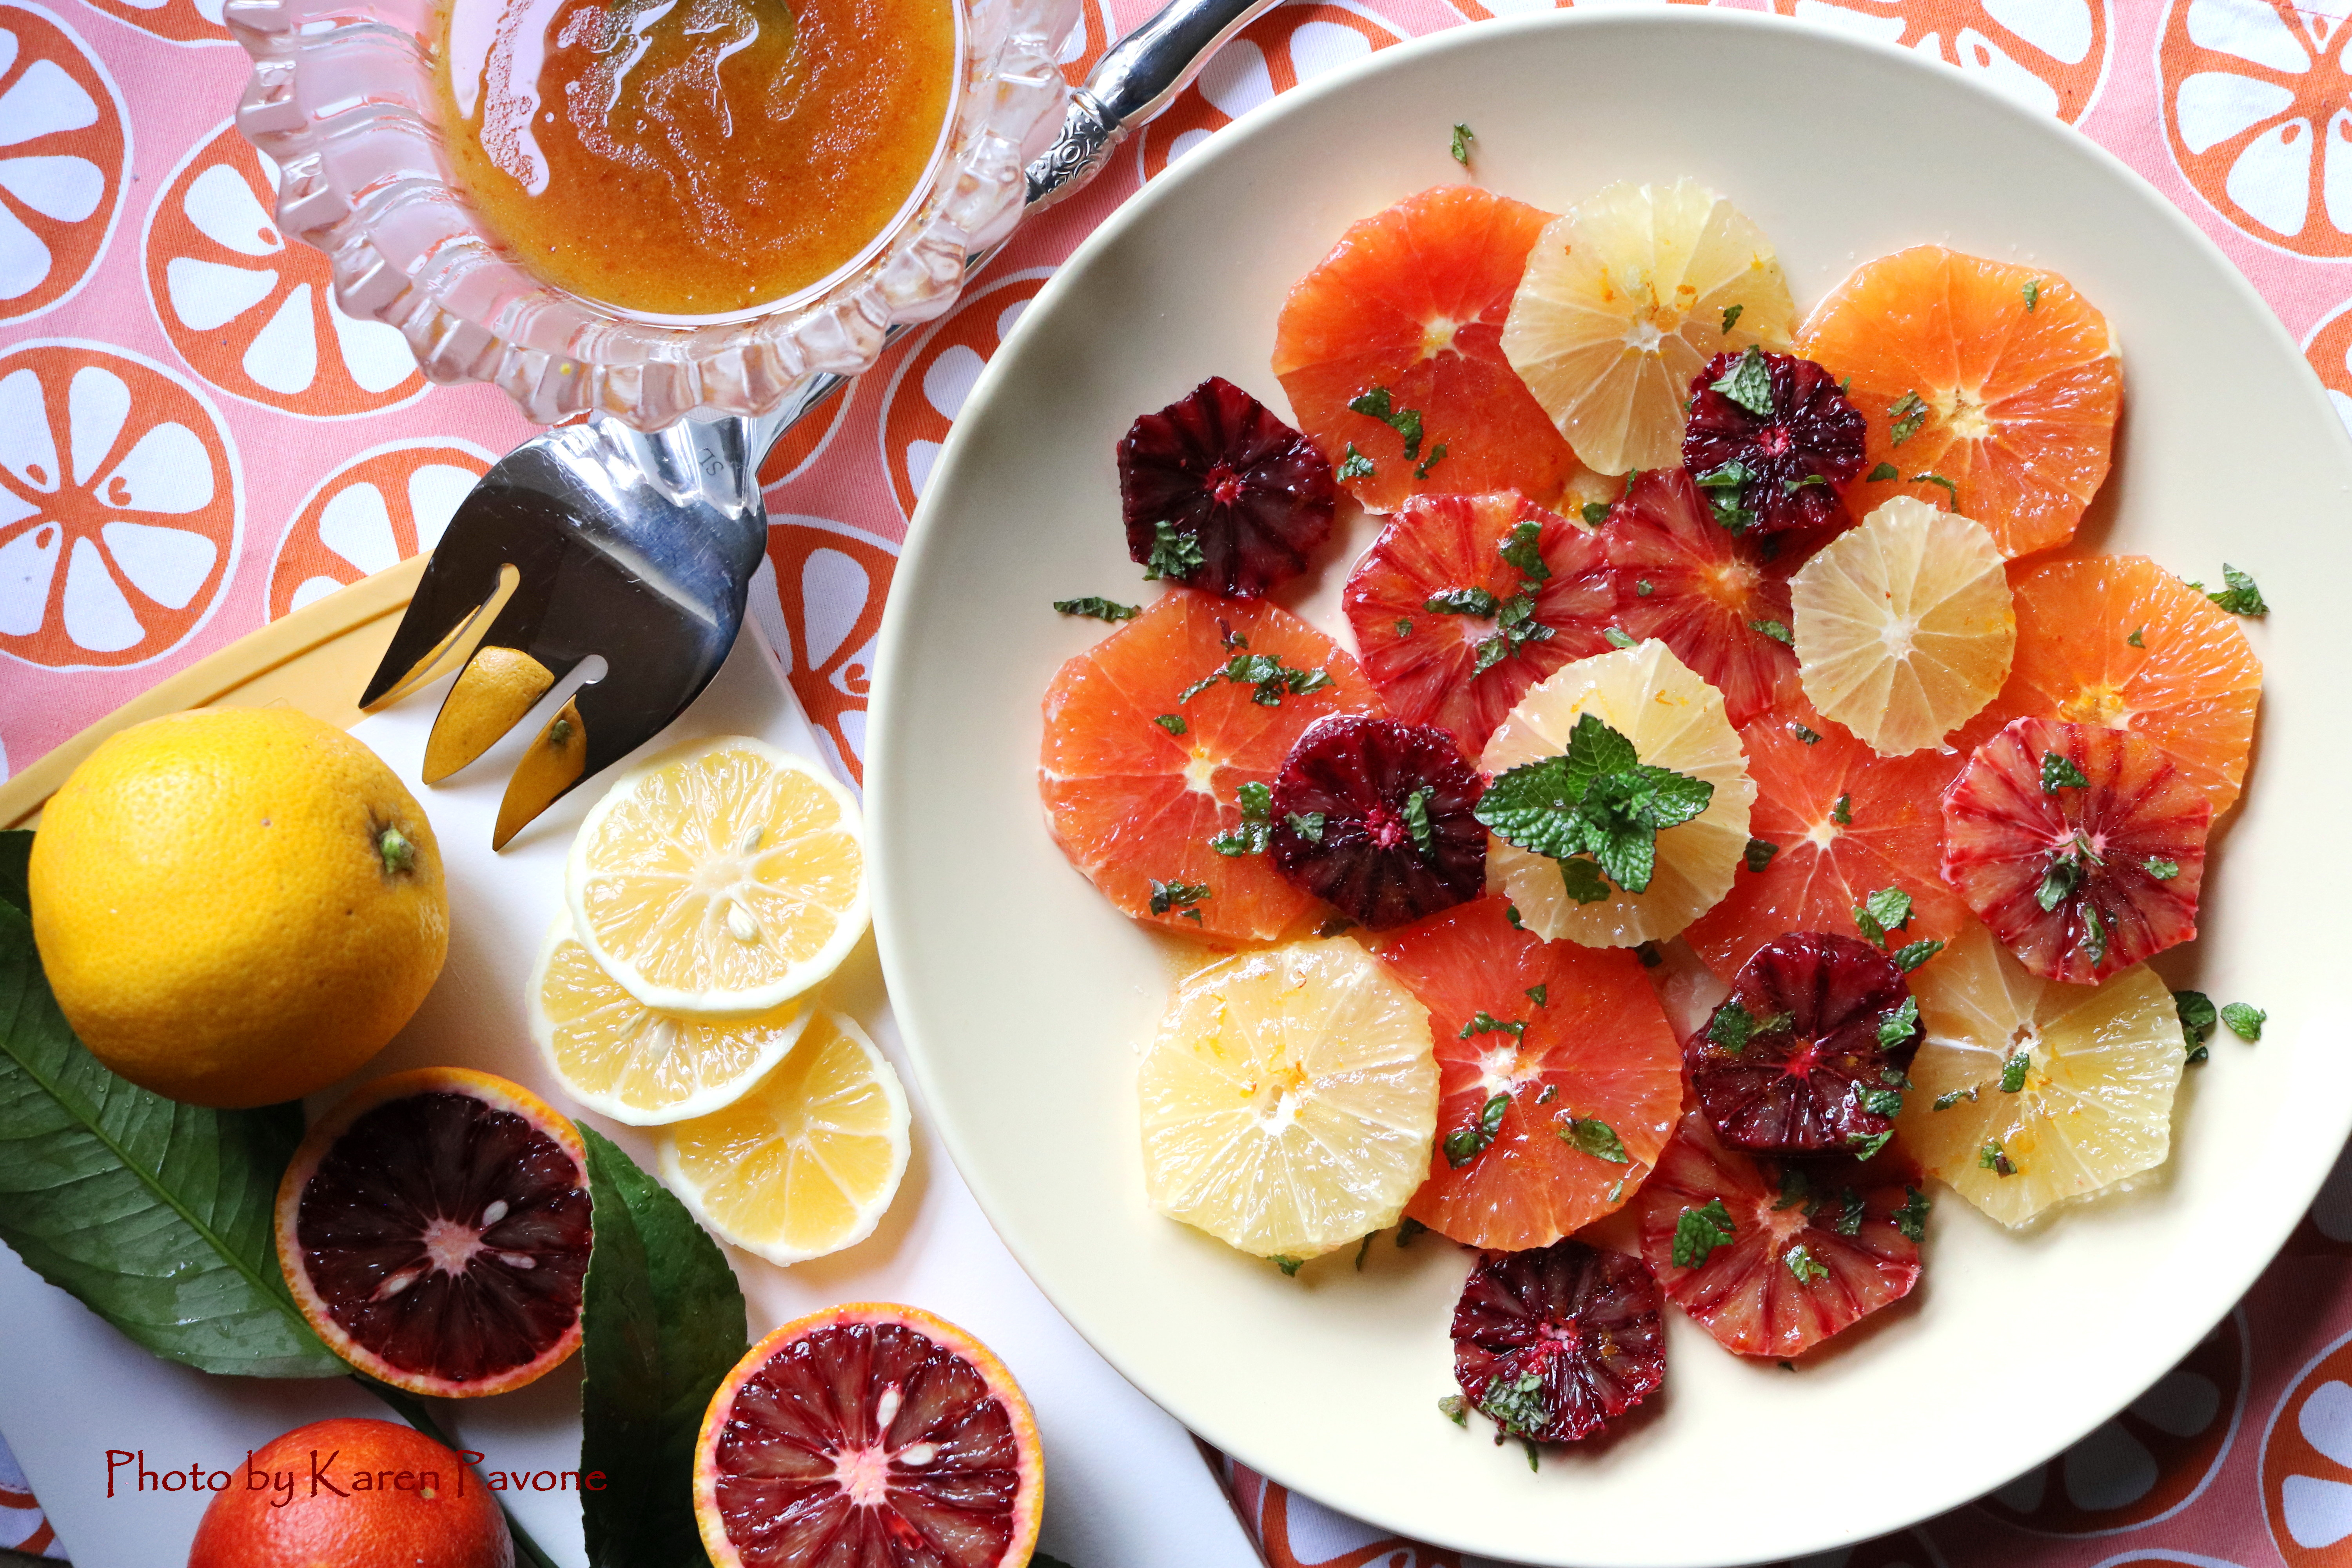 Watch Winter Fruits: 9 Citrus Recipes to Enjoy When Its Cold video